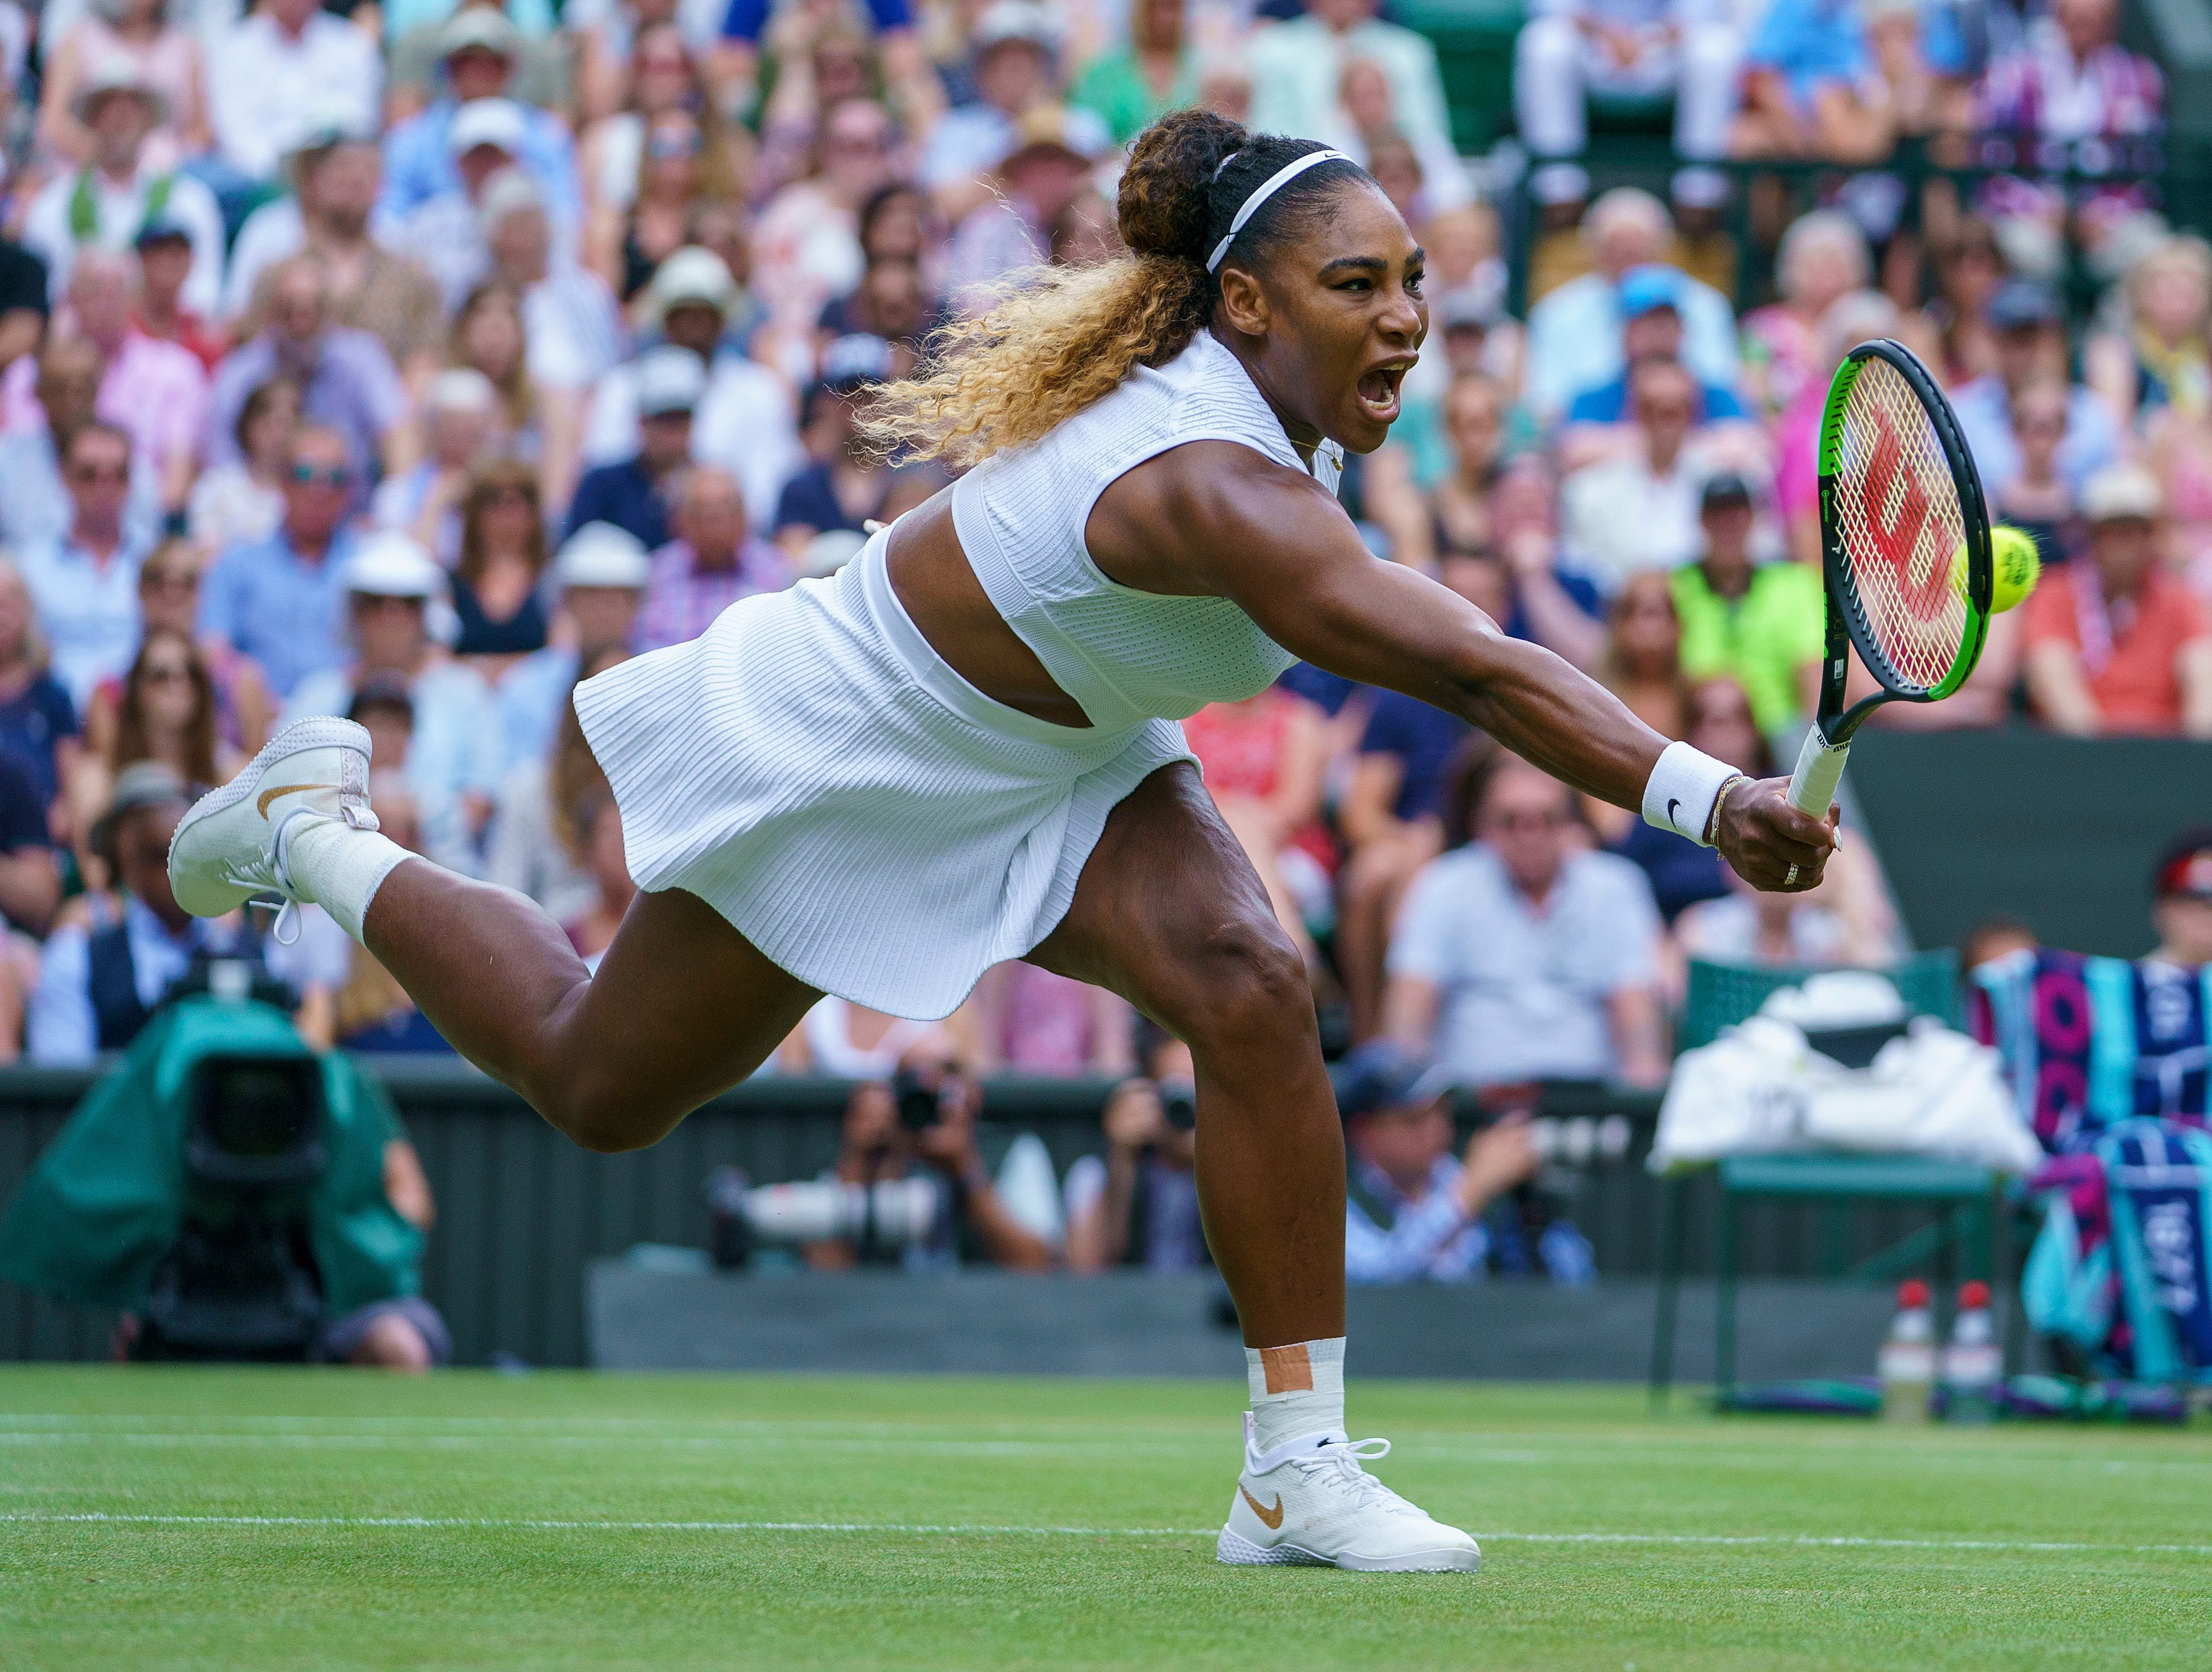 Tennis ace Serena Williams is worried she has waited too long to have another baby